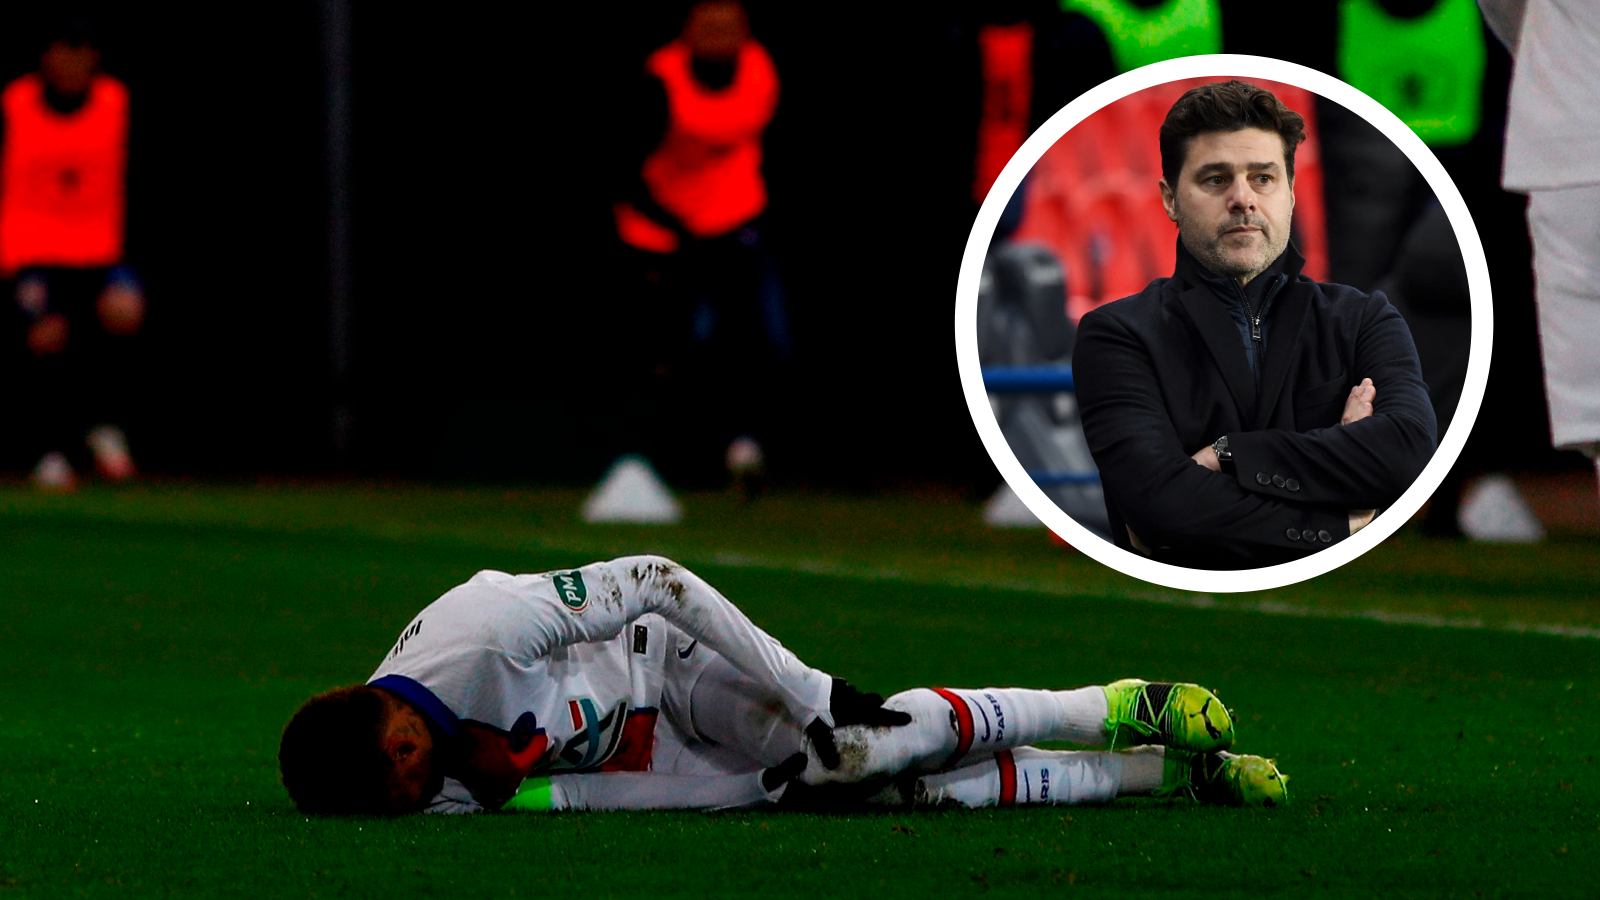 Pochettino ponders 'lack of protection' for Neymar after PSG star's worrisome adductor injury